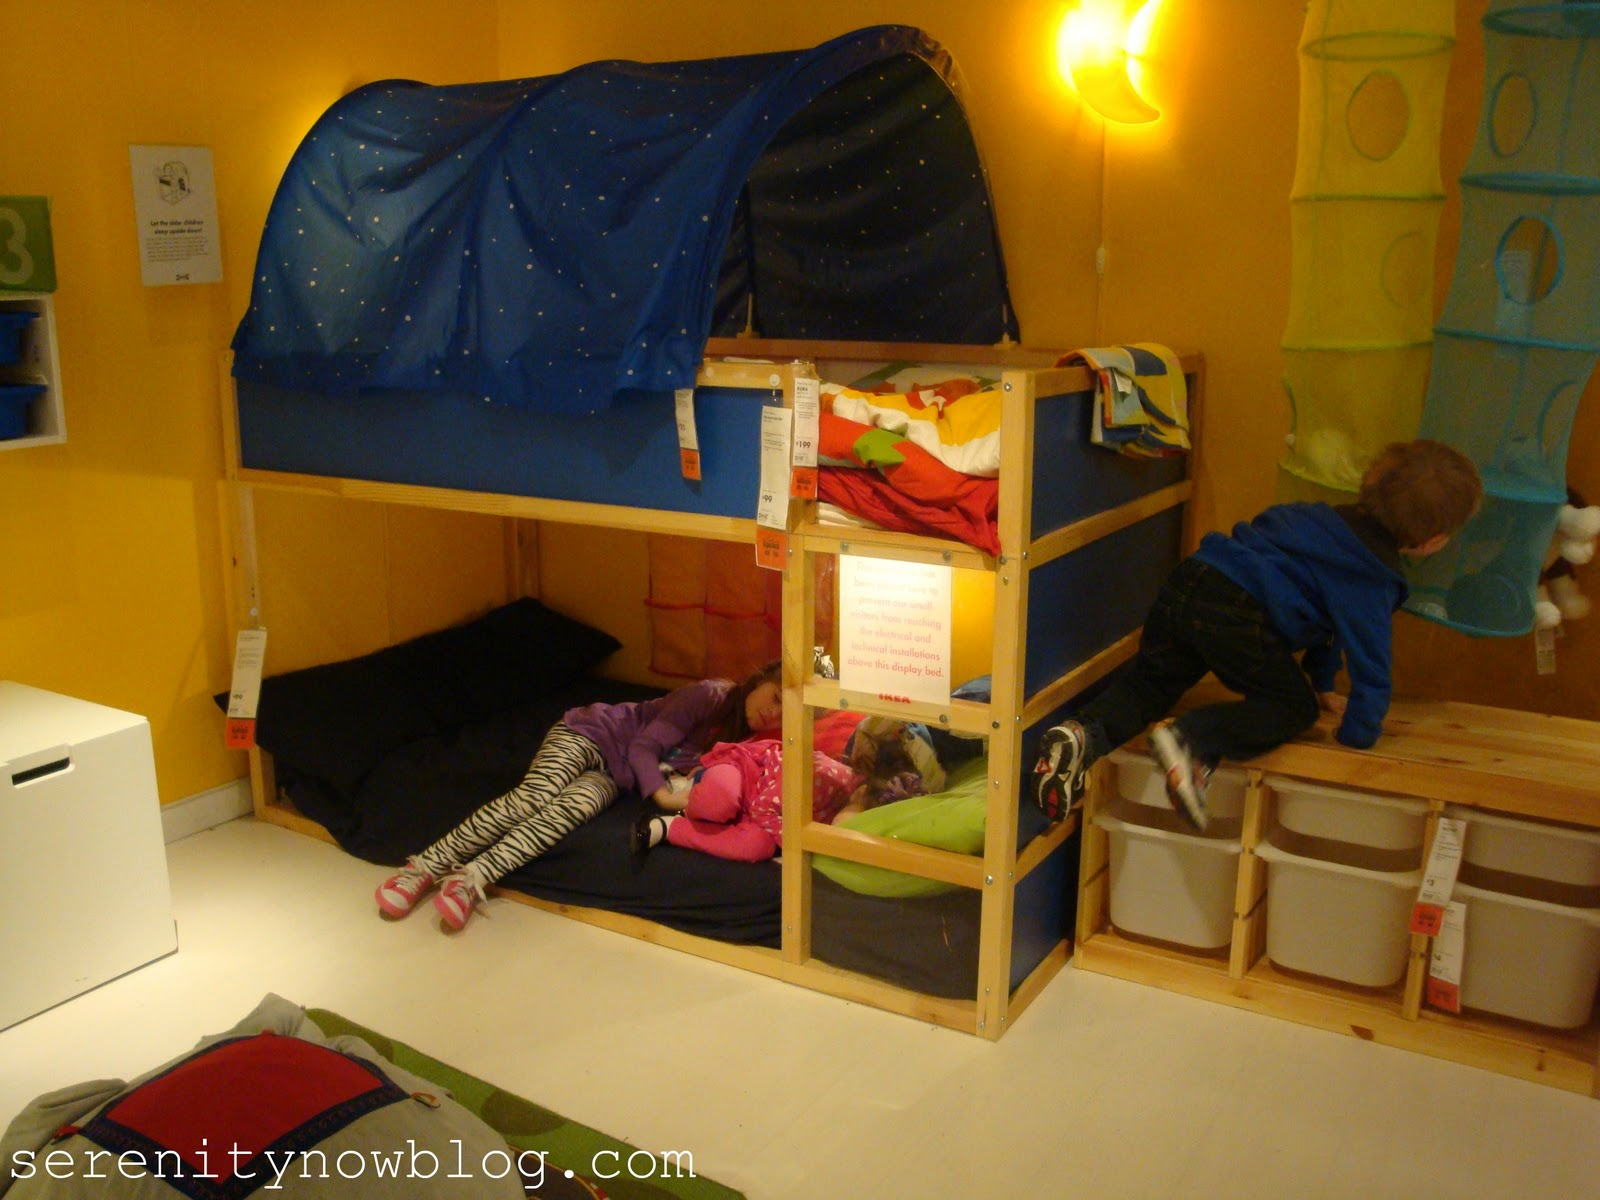 Serenity now ikea decorating inspiration our shopping fun - Kids room ideas ikea ...